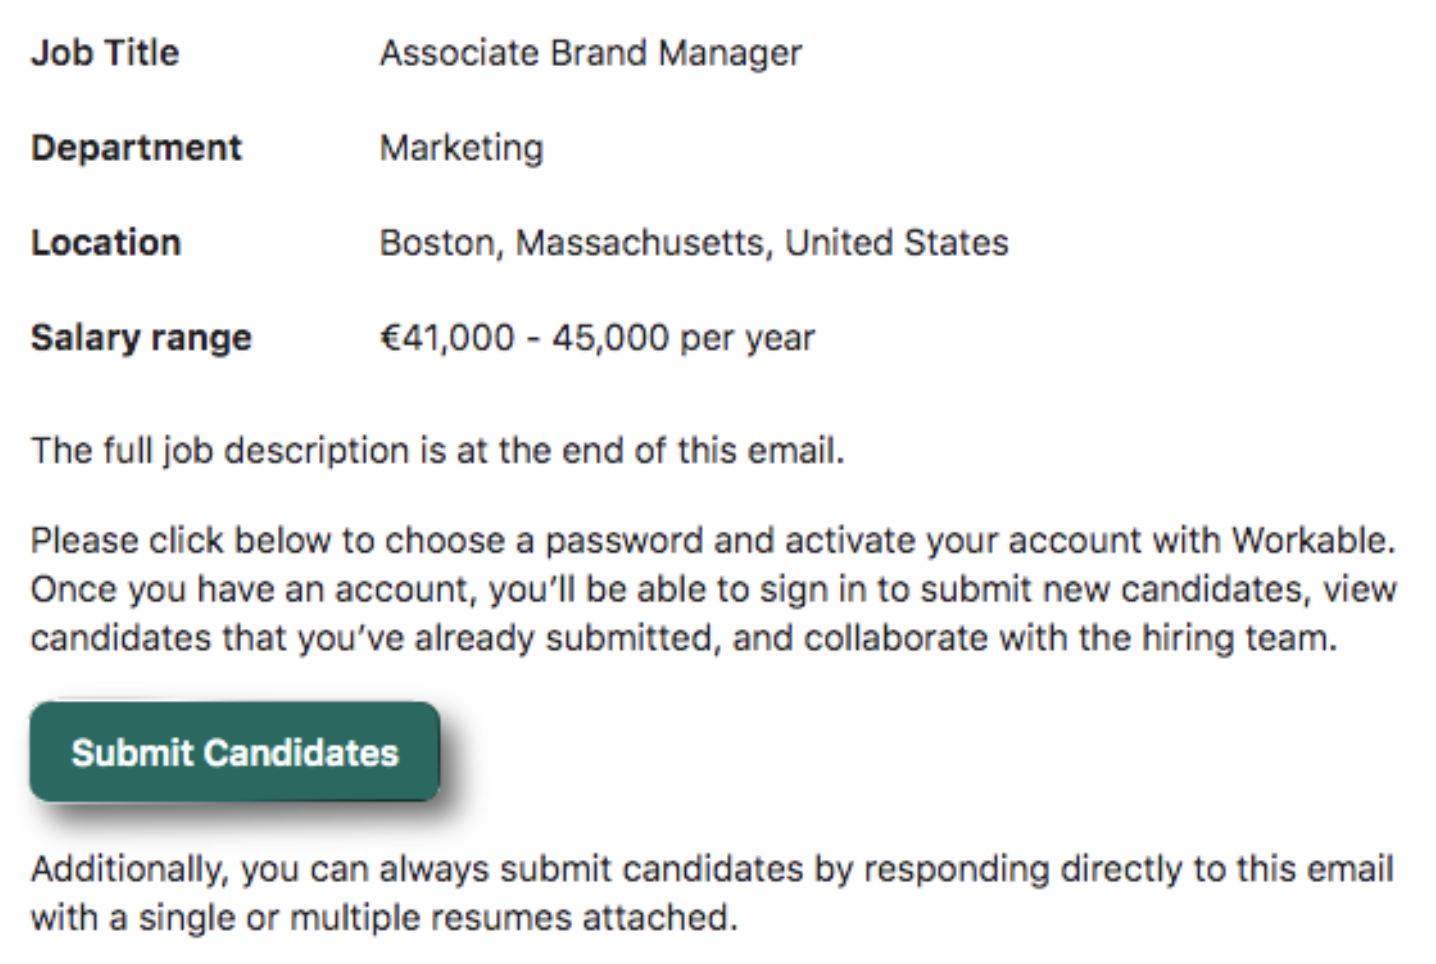 recruiter_invite_email.png